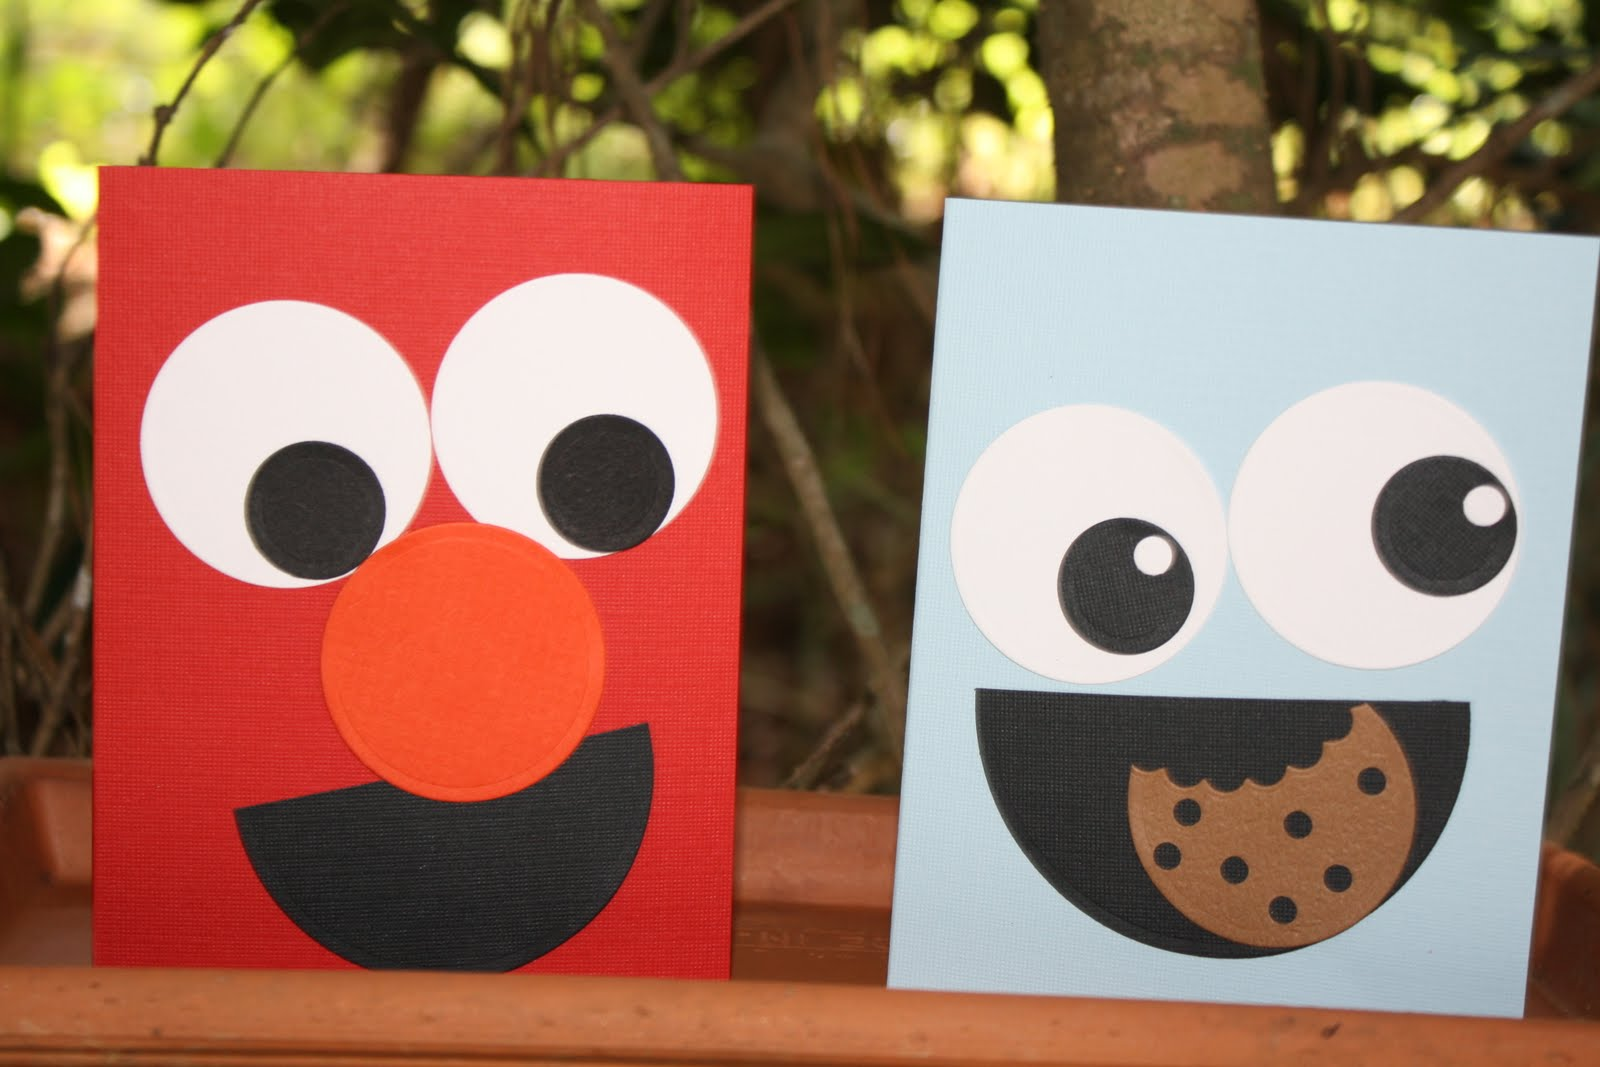 Here is my Elmo and Cookie Monster: